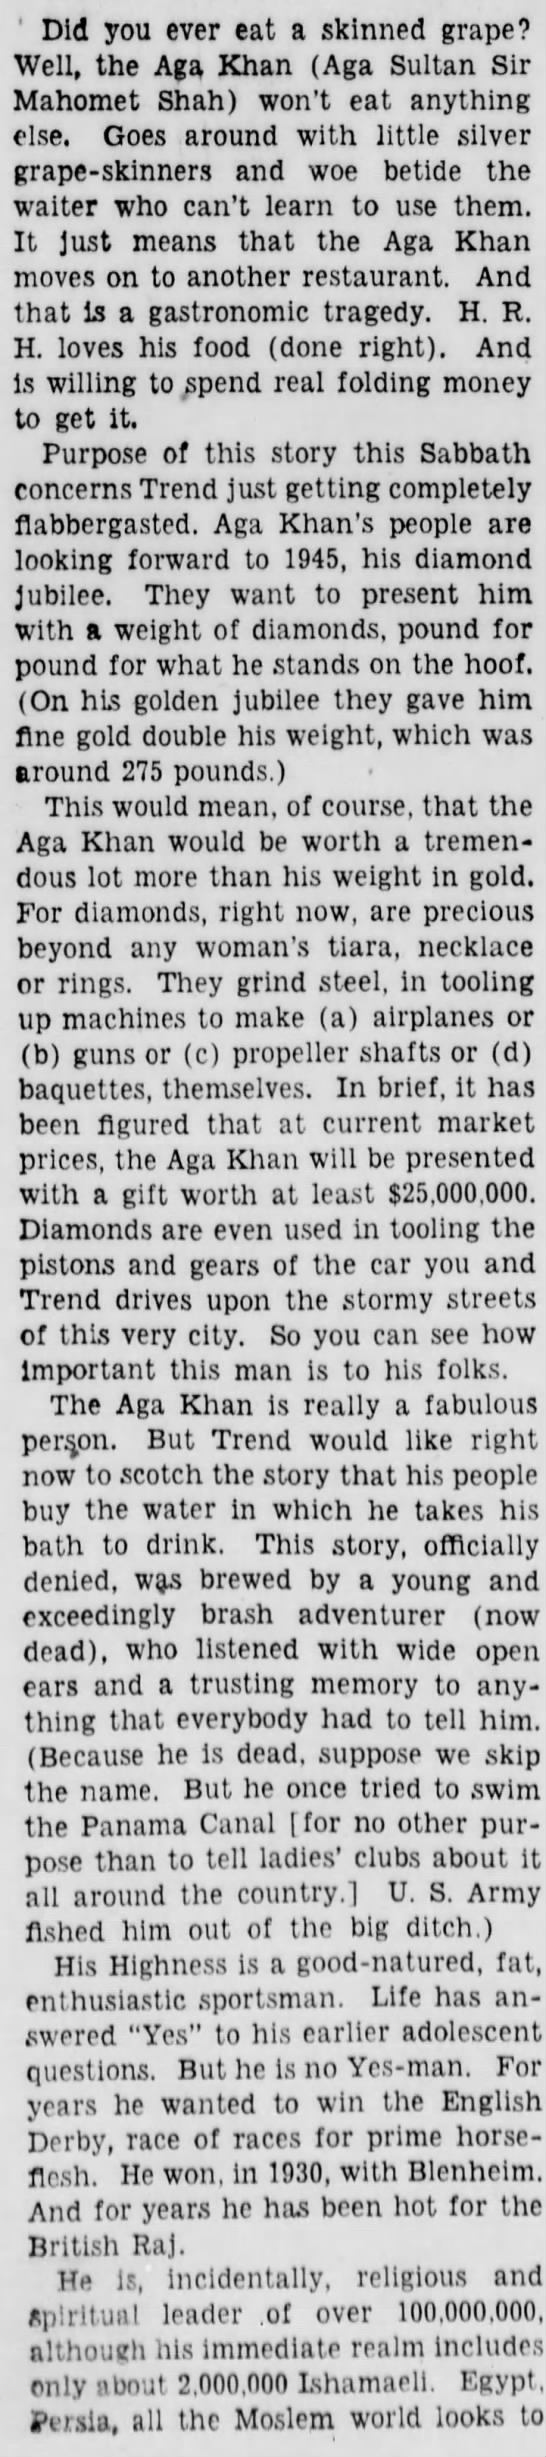 aga1a Old Print Article: Aga Khan Worth His Weight In Gold, Brooklyn Daily Eagle (1941)